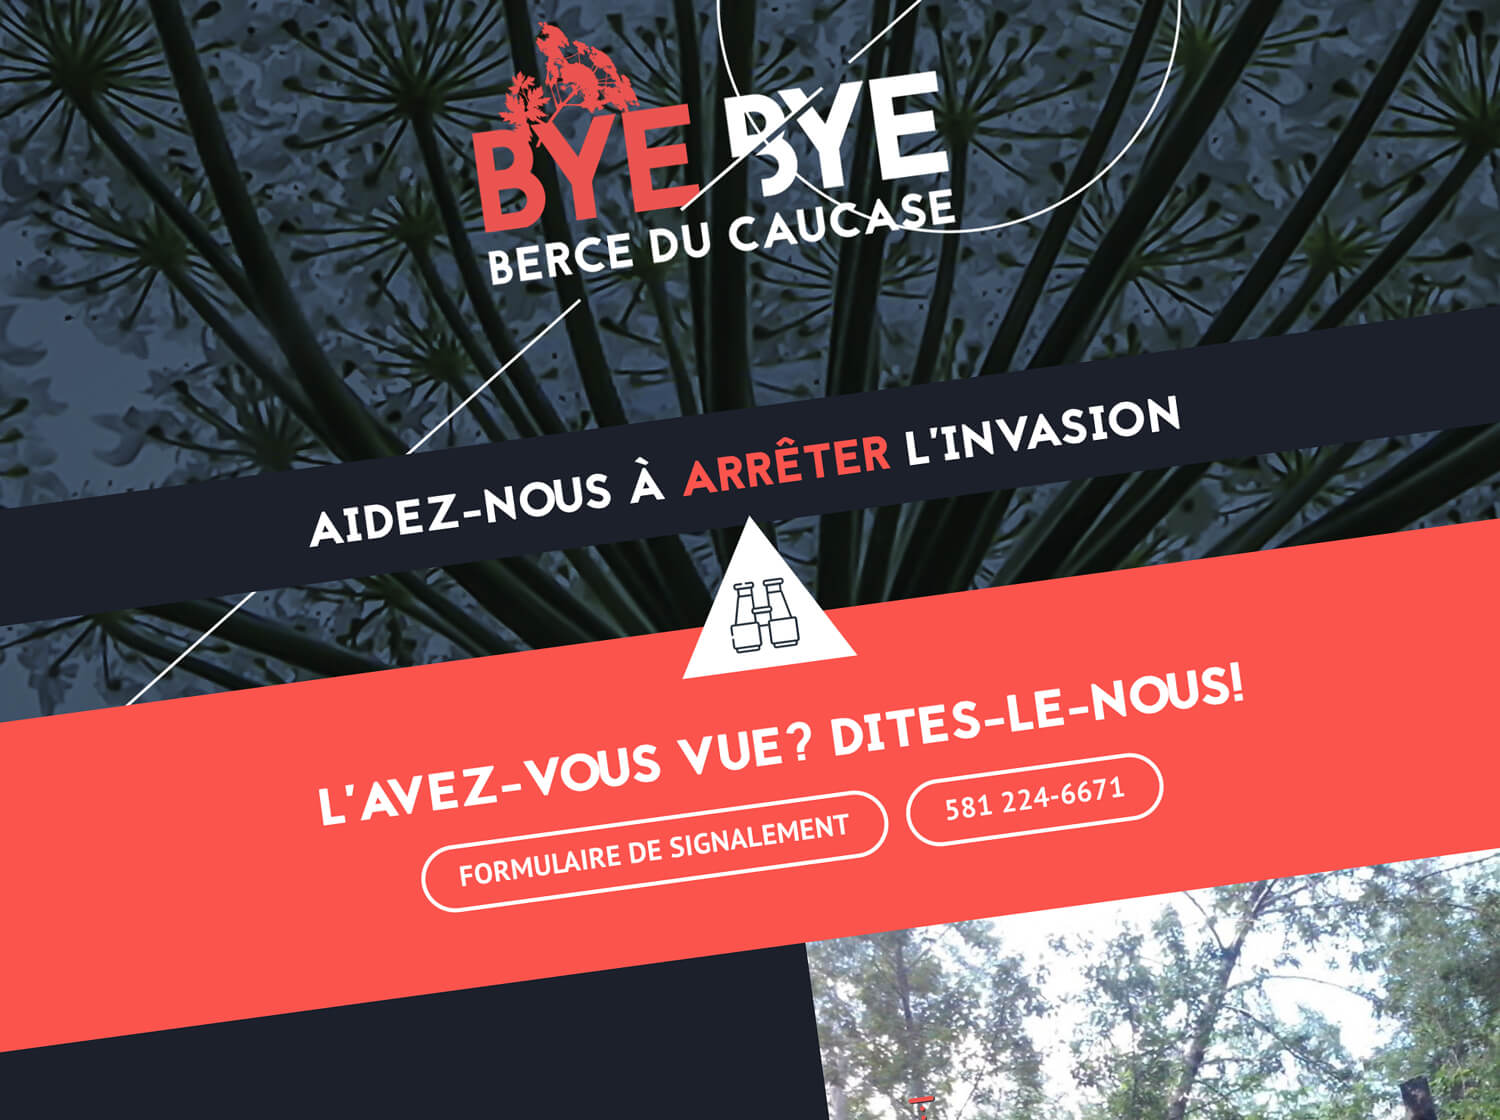 Interface site web Bye Bye Berce du caucase